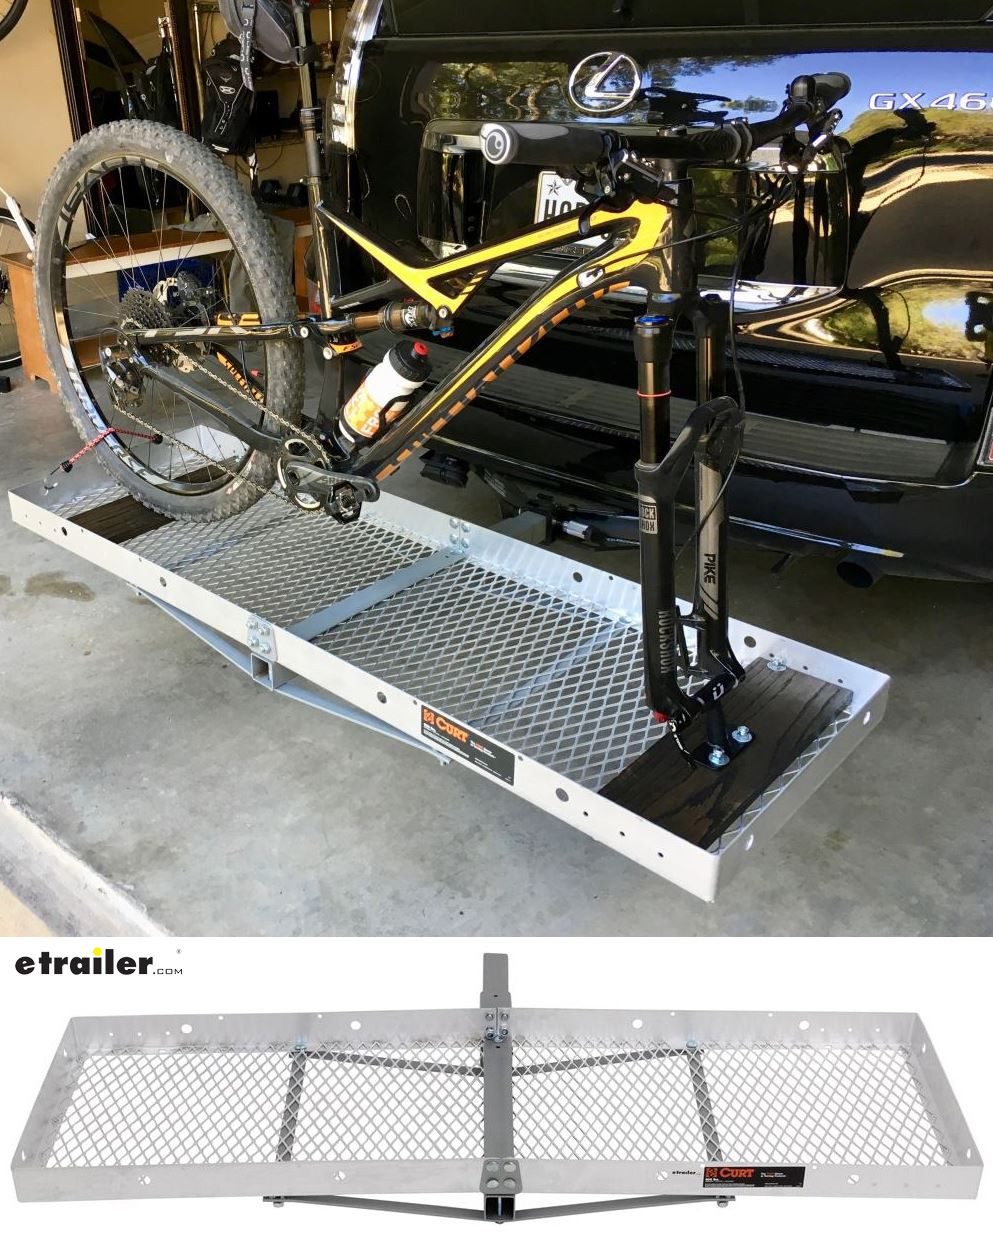 19x60 Curt Cargo Carrier For 2 Hitches Aluminum Folding 500 Lbs Curt Hitch Cargo Carrier C181 Hitch Bike Rack Cargo Carrier Hitch Cargo Carrier